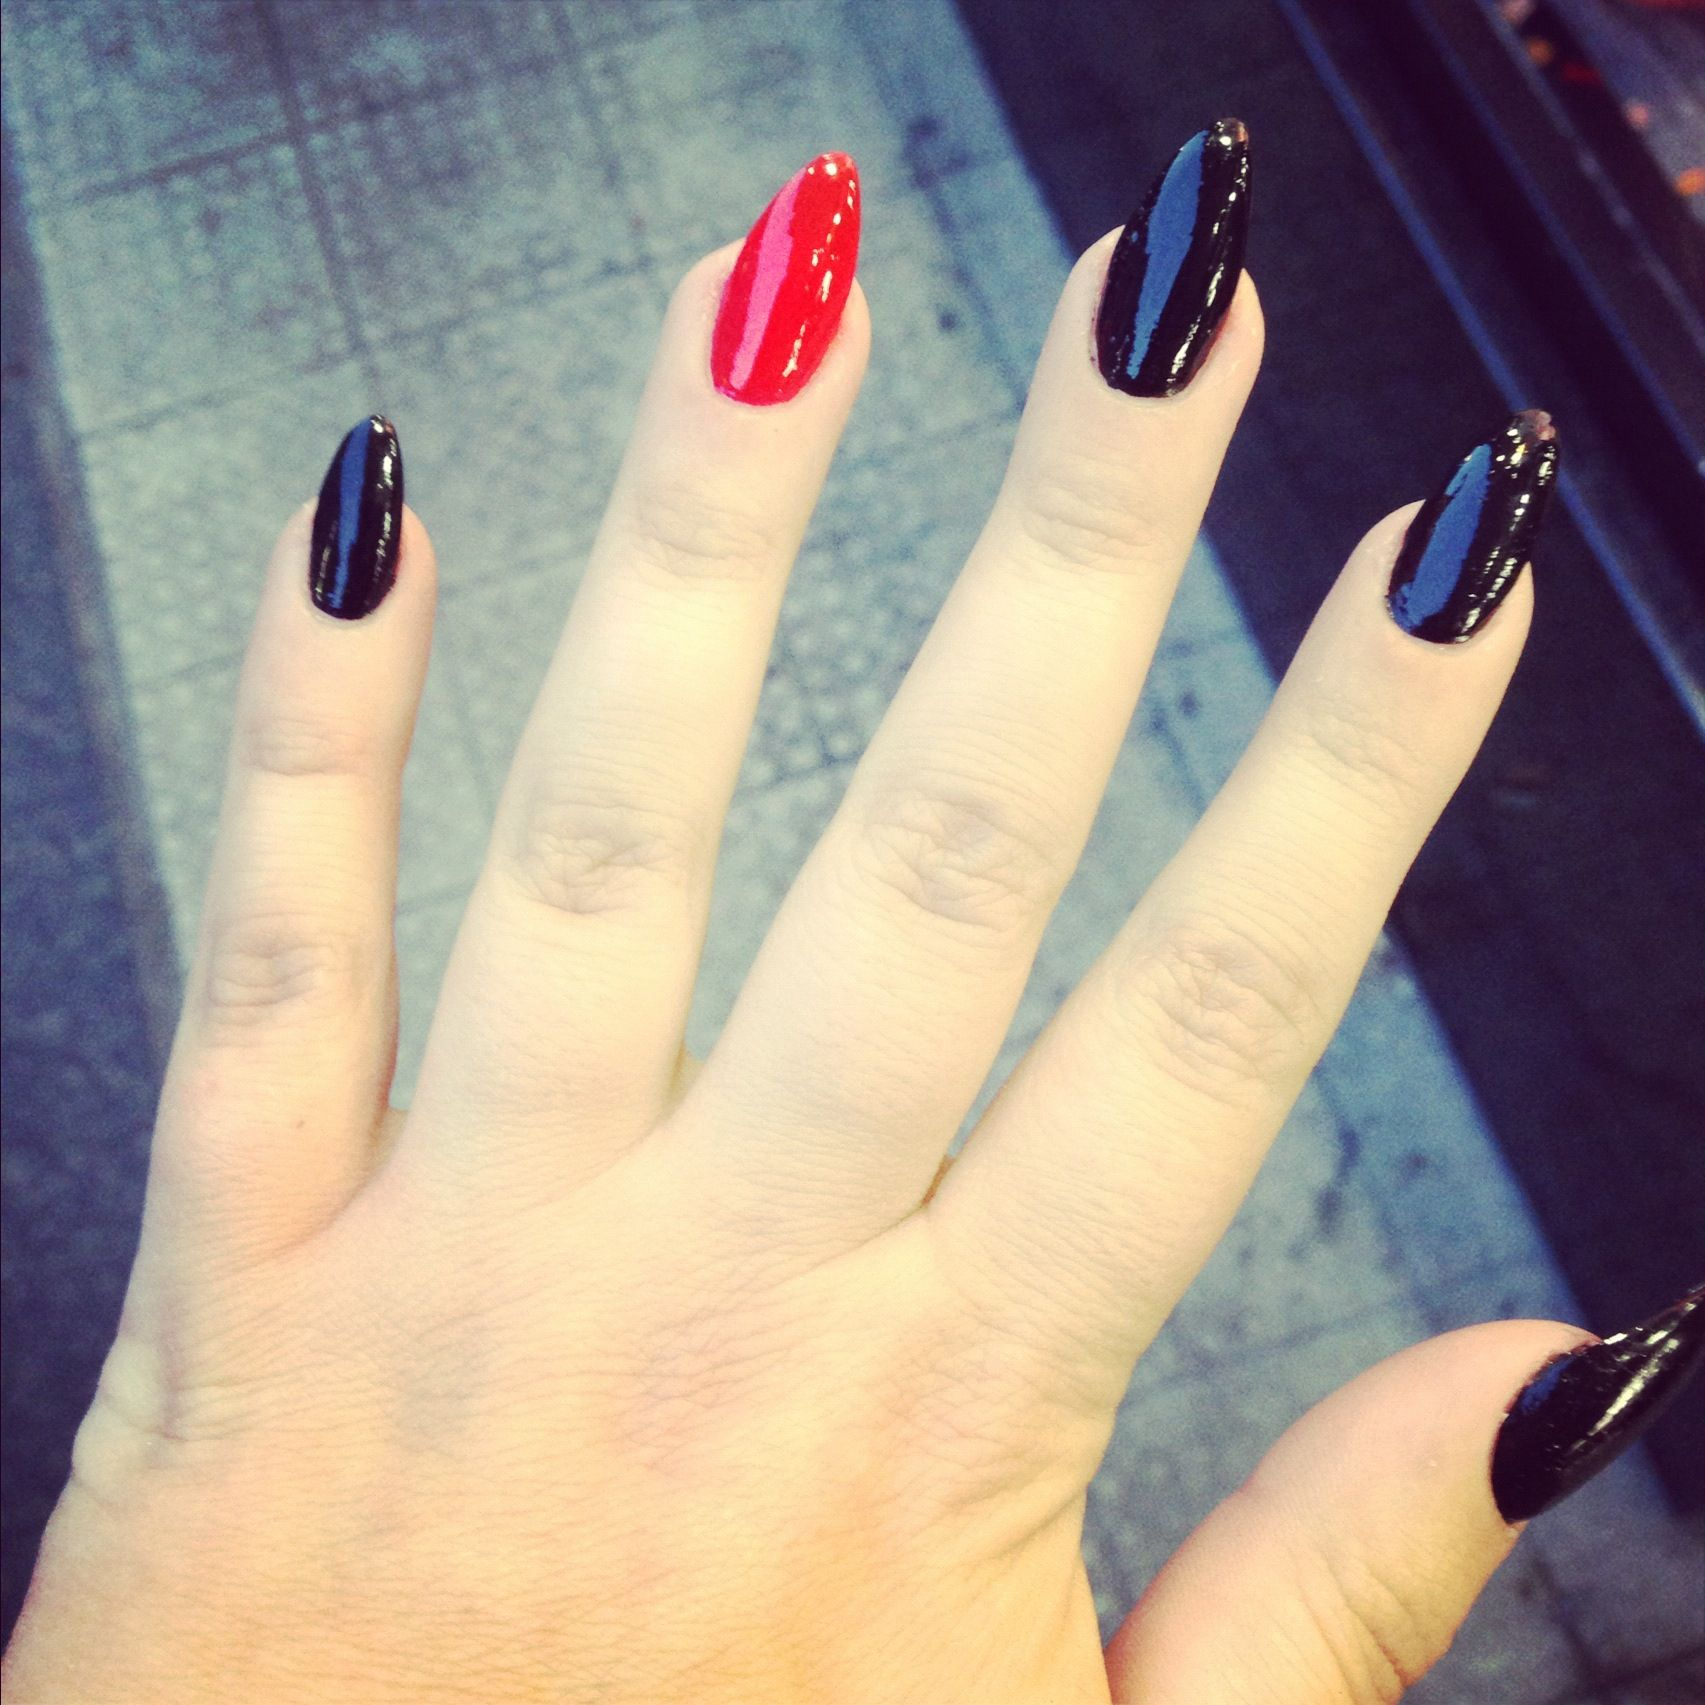 Pointy nails #pointy #nails #red #black | Sensational ...